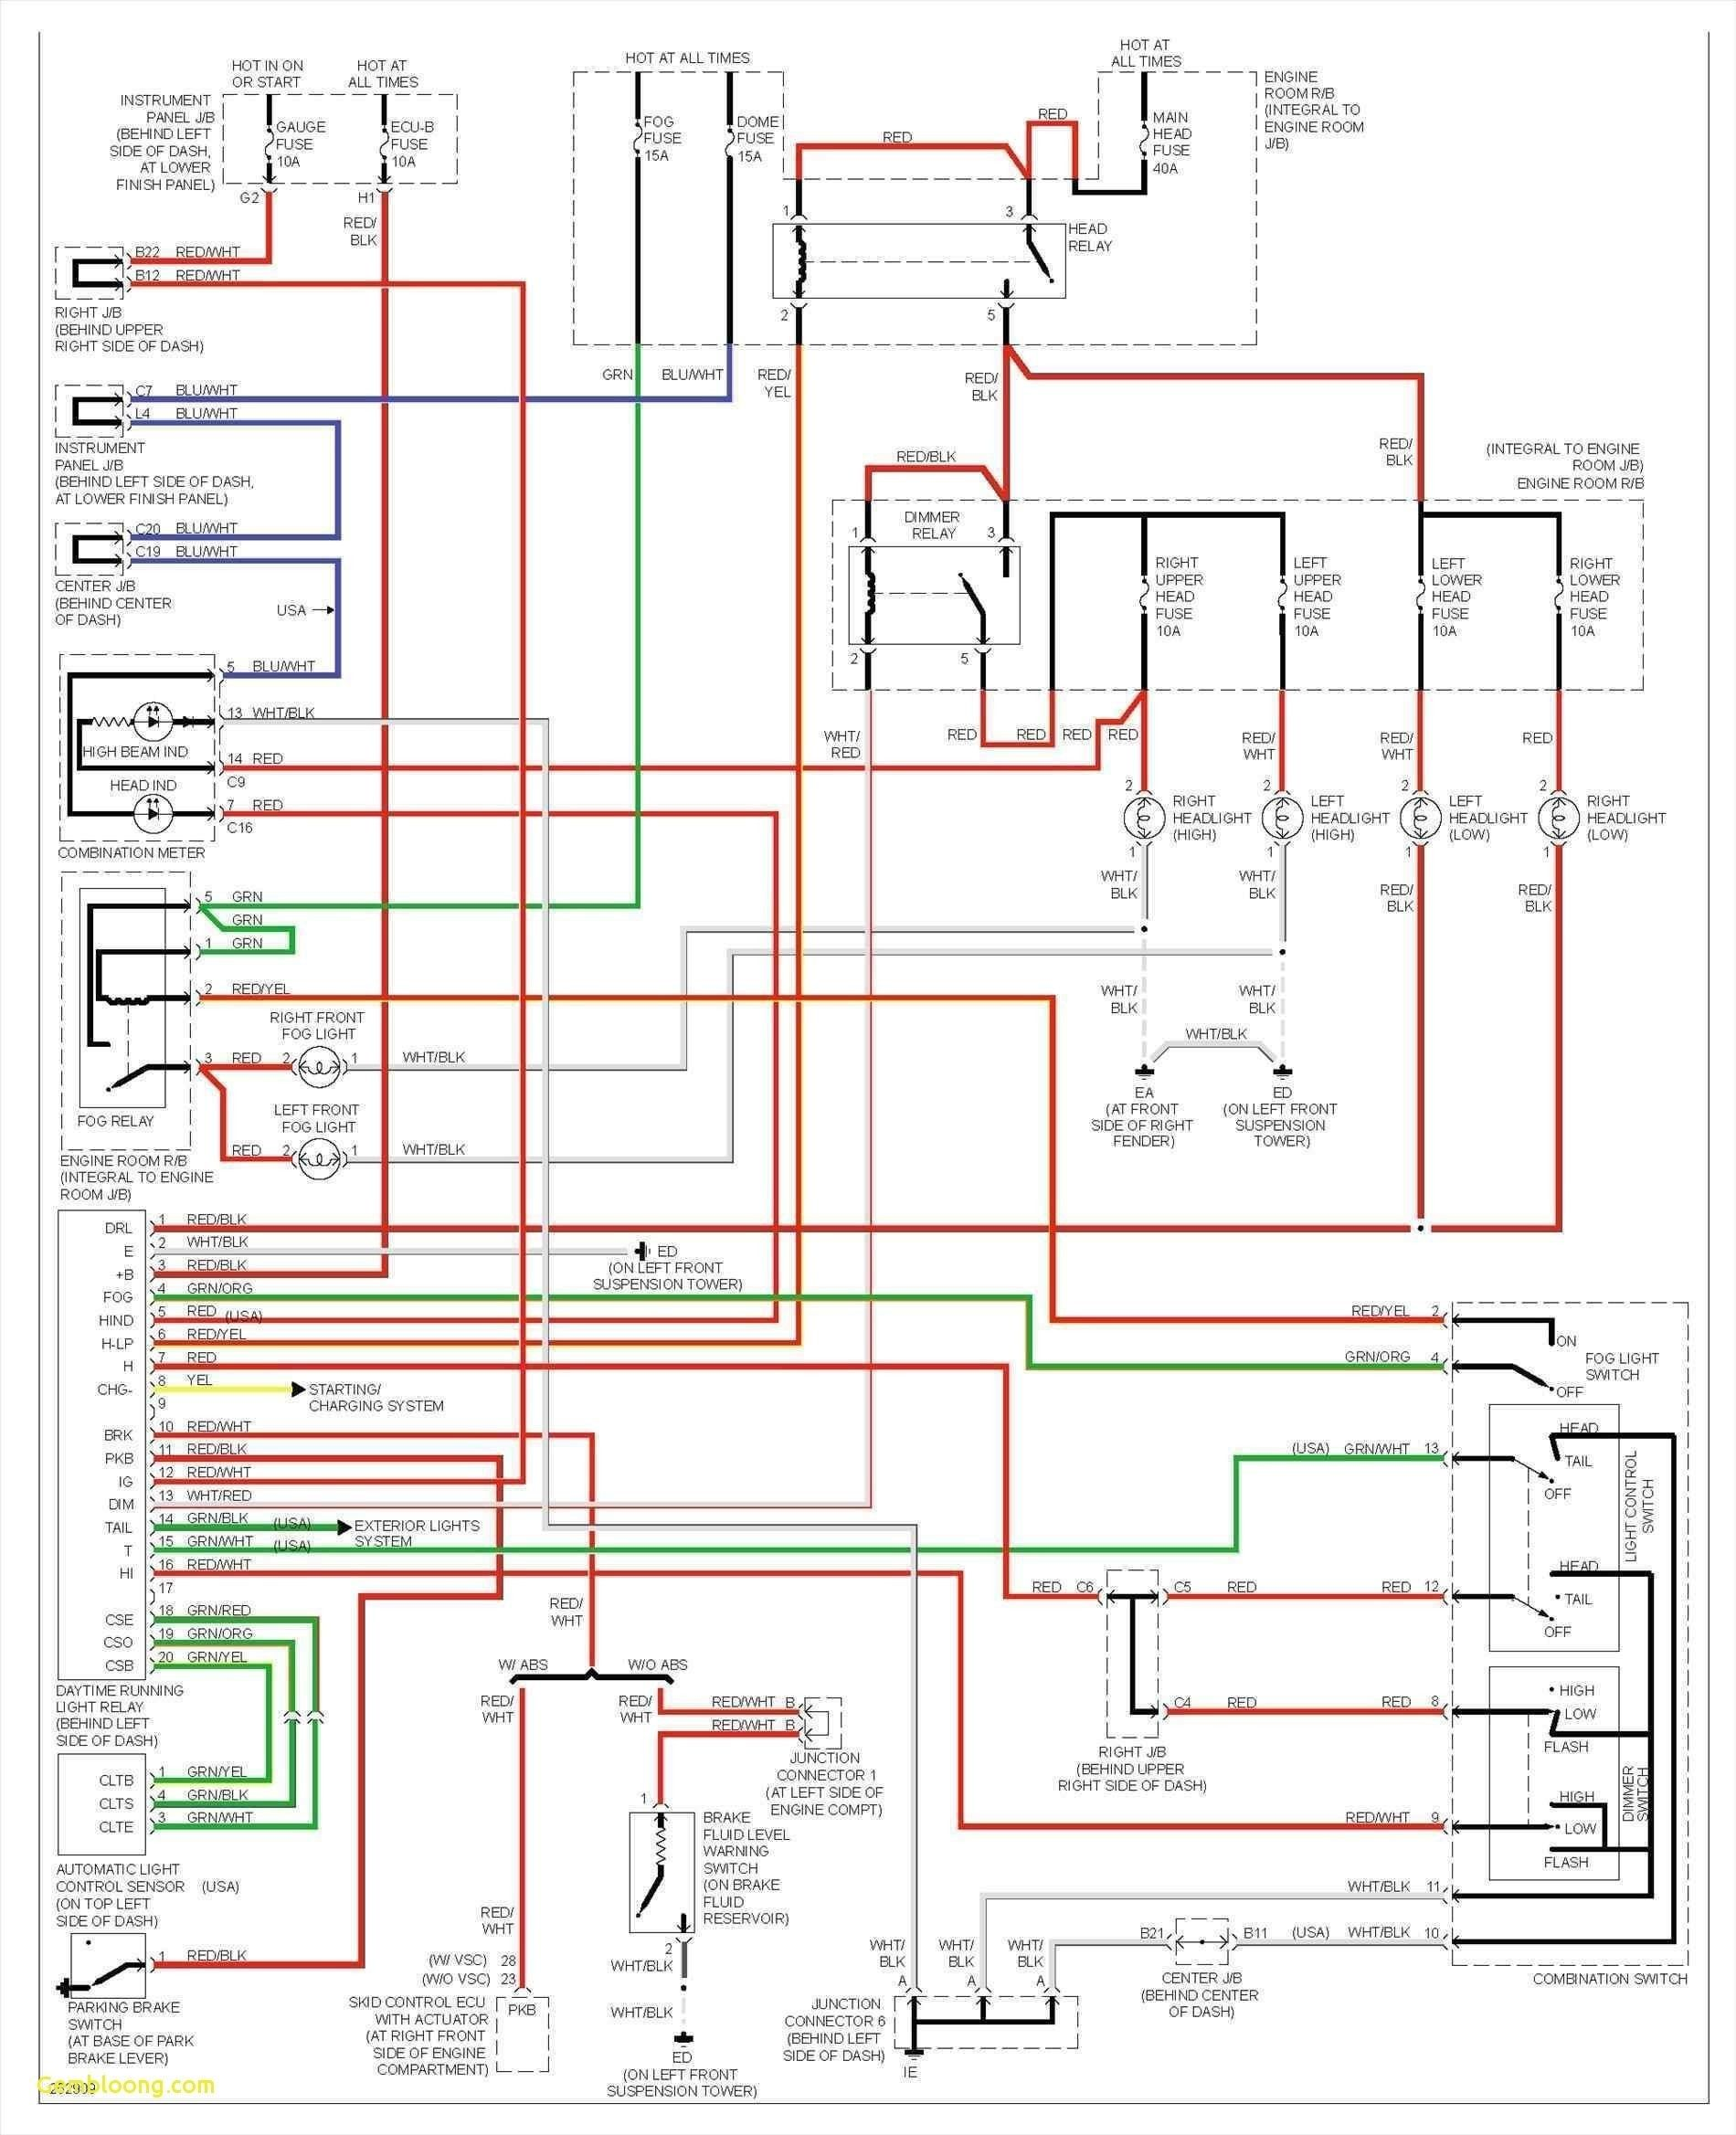 New Wiring Diagram For Sunvic Central Heating Panel